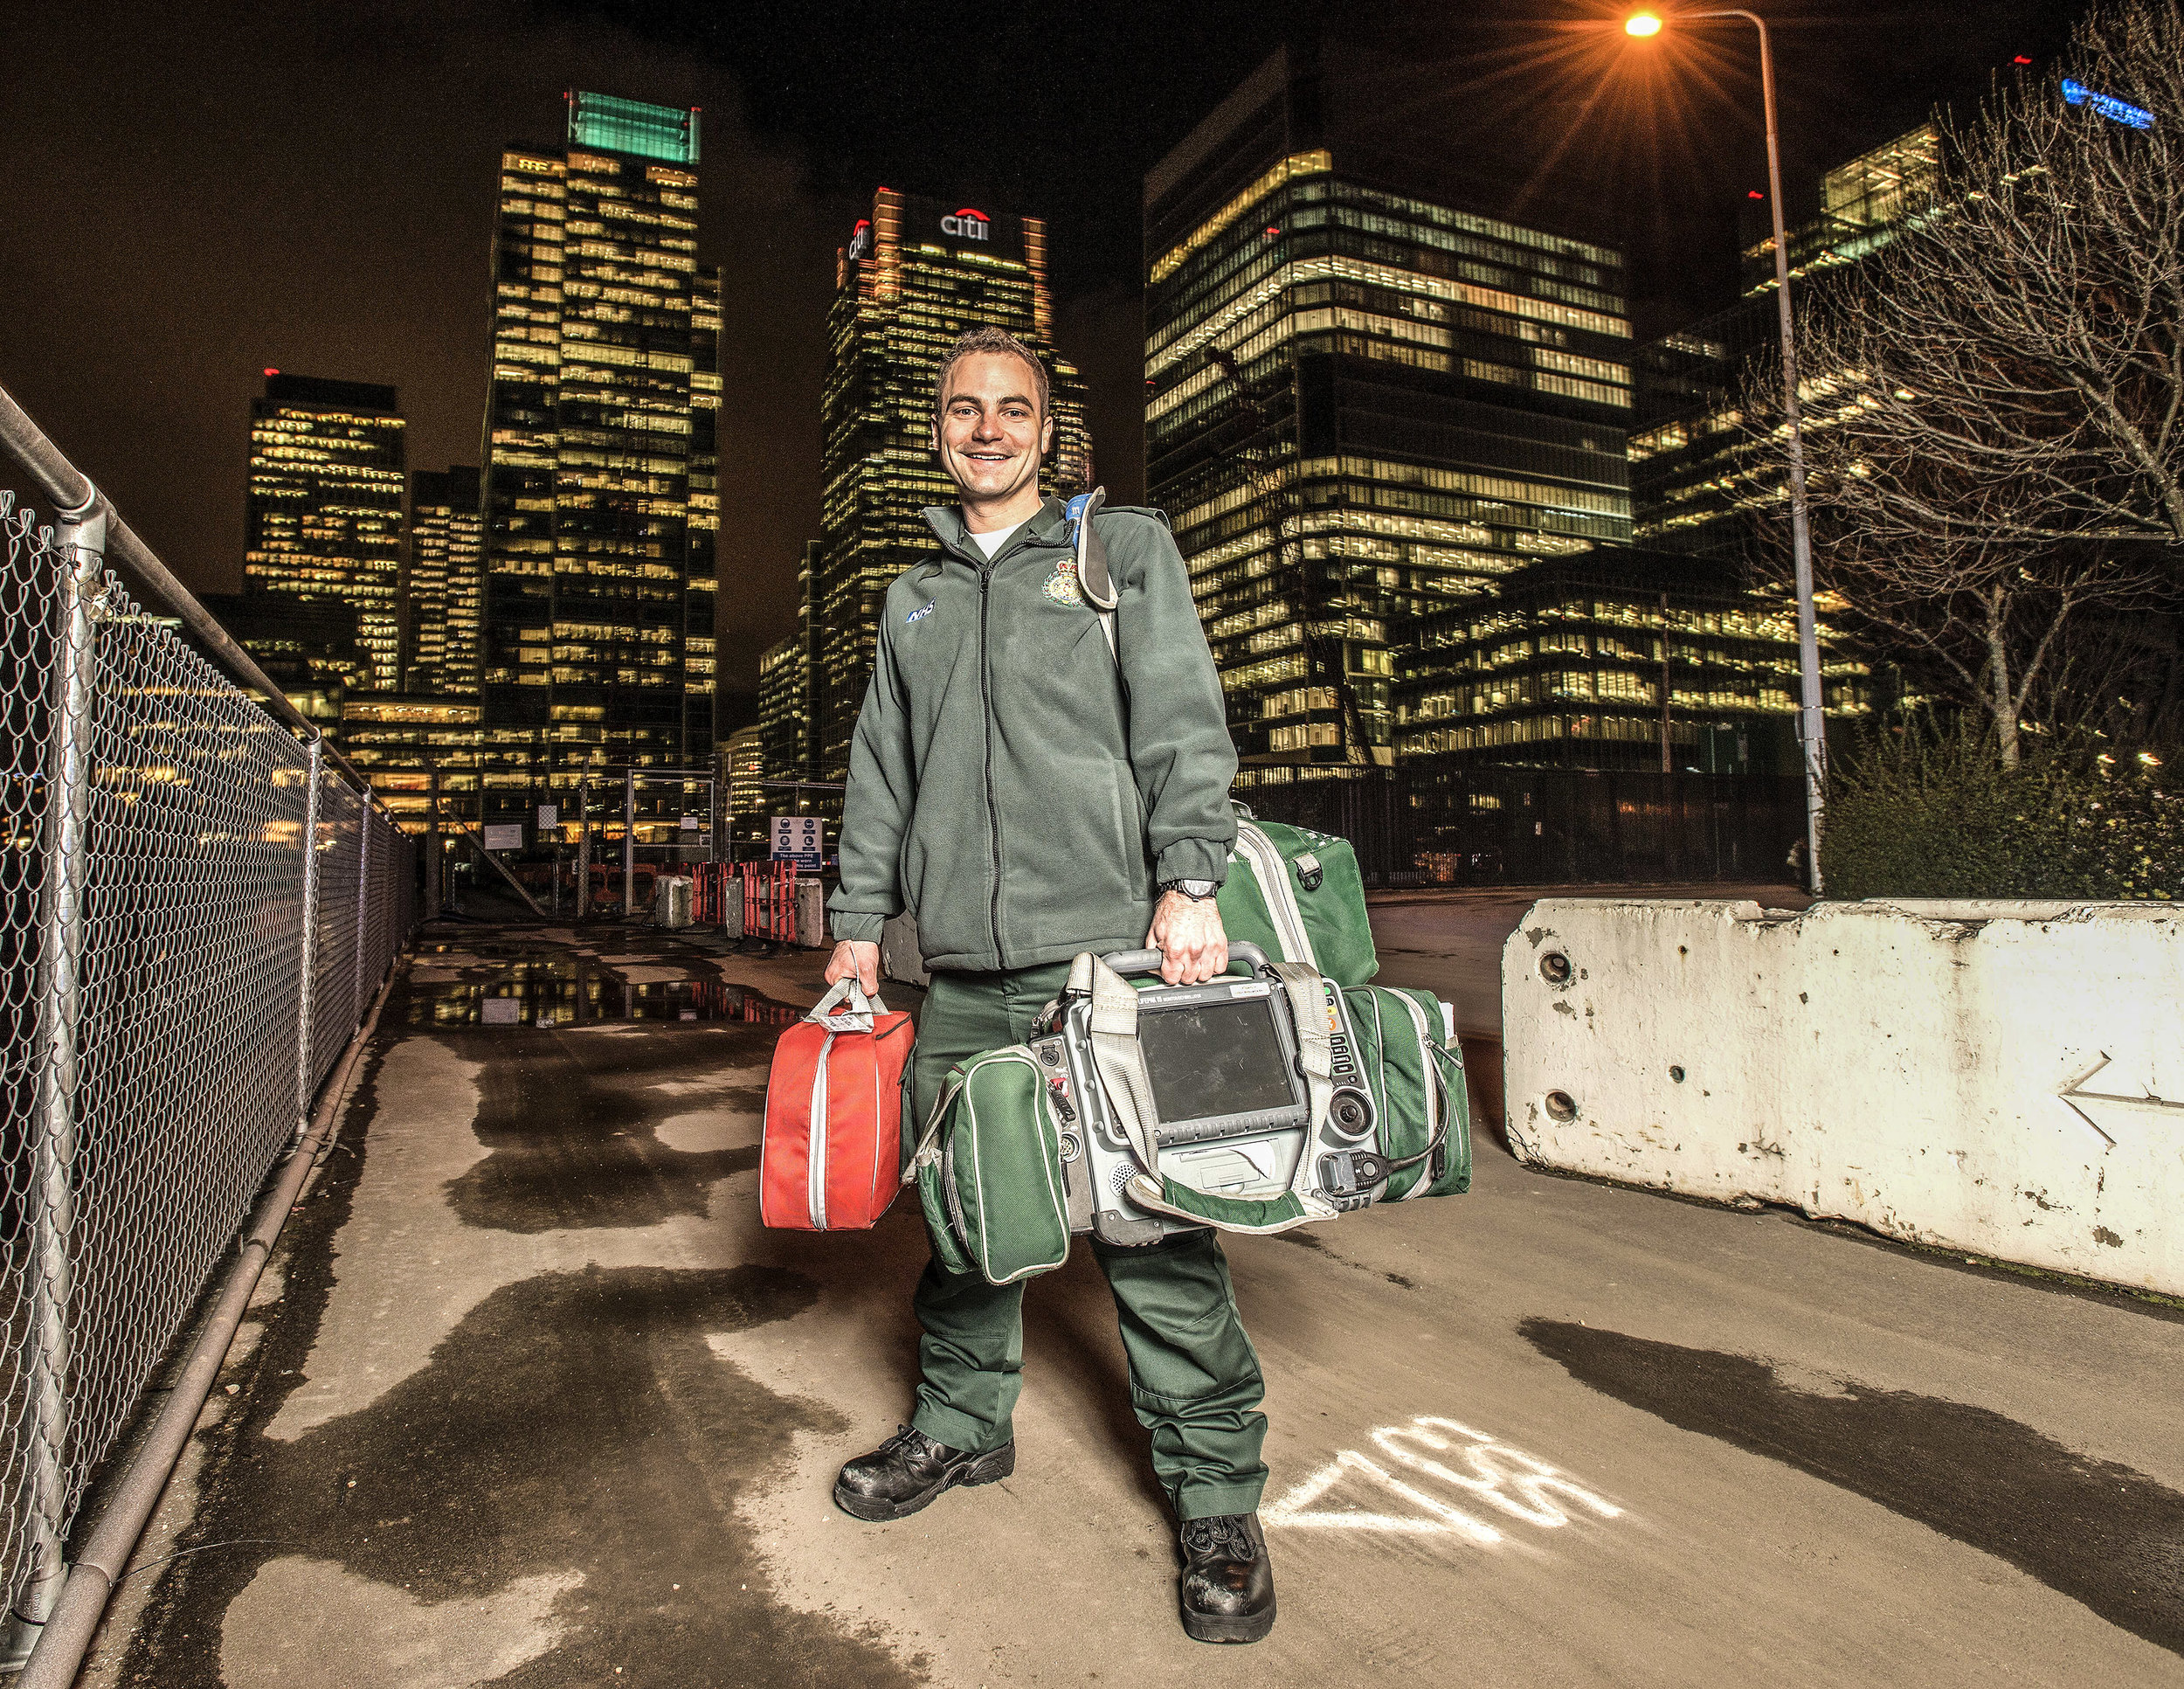 Business Portraits - Paramedic Andrew Winkler